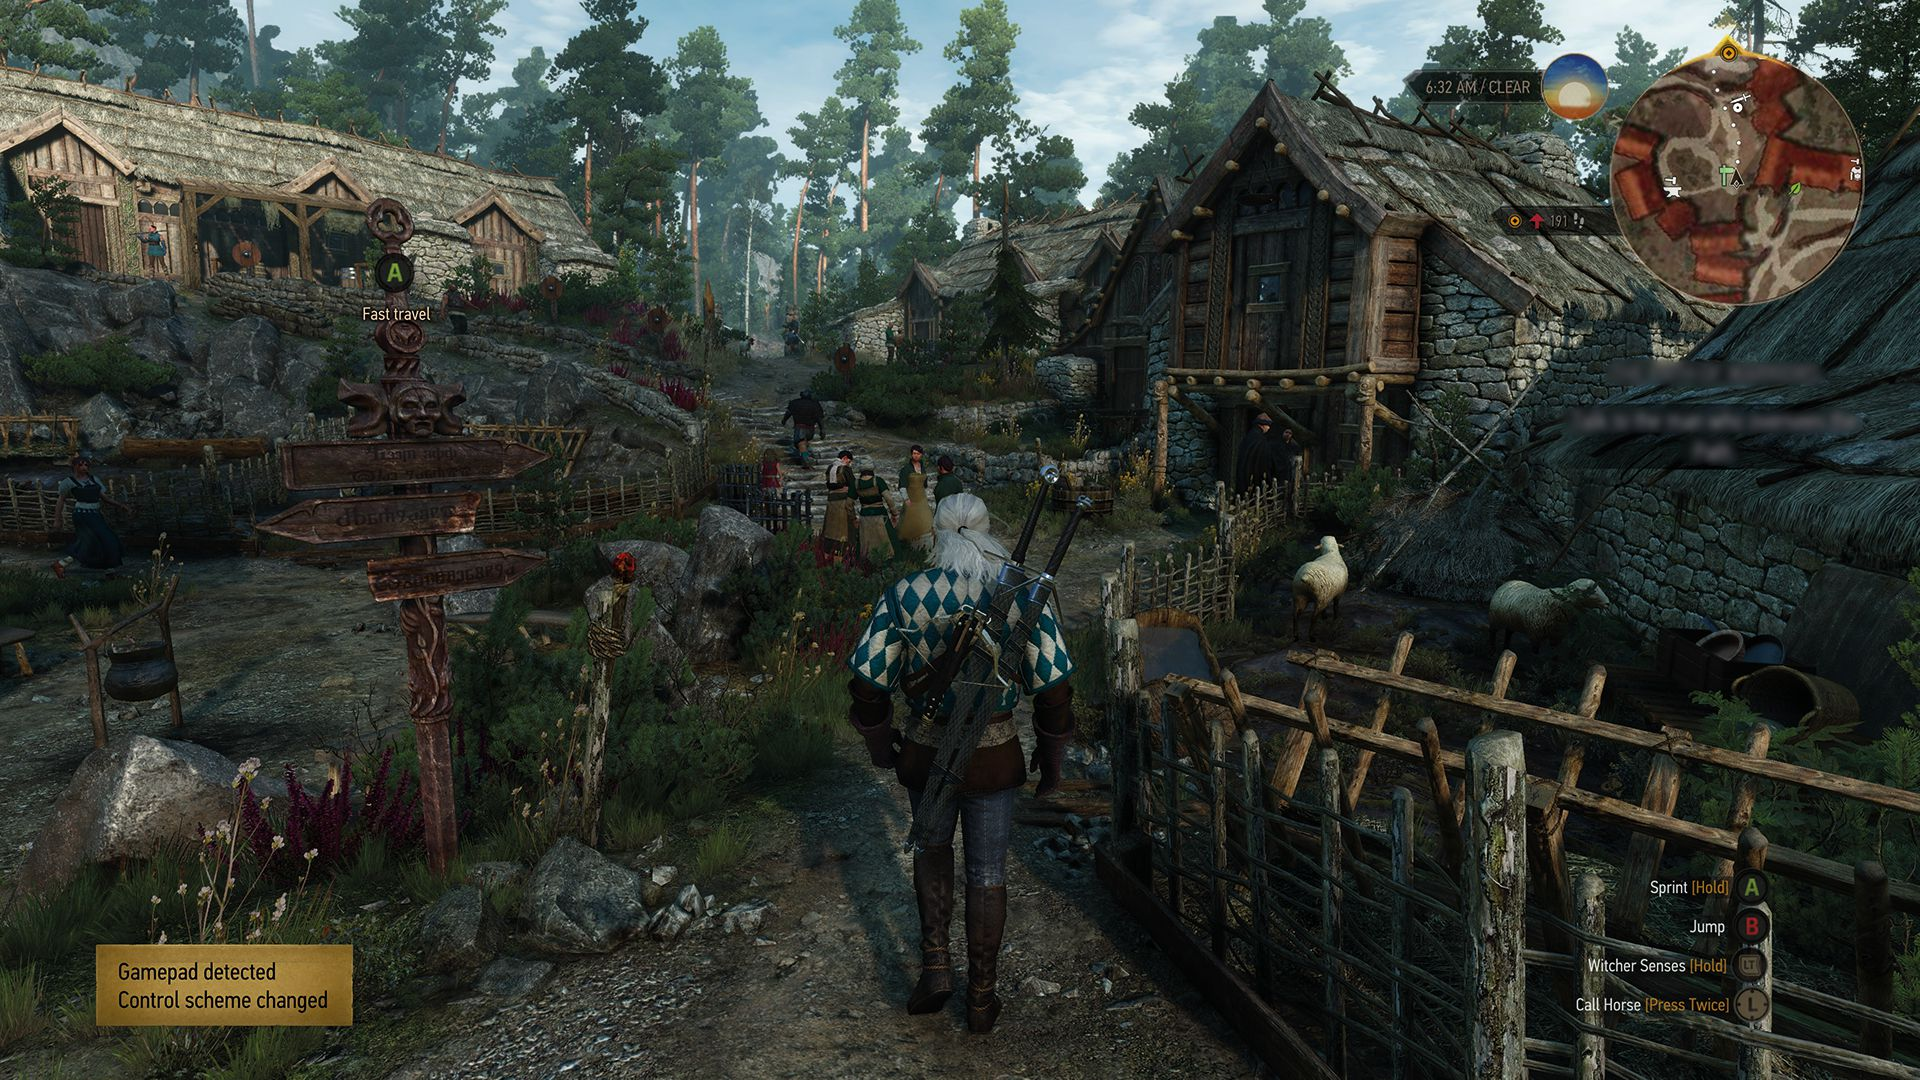 the_witcher_3_wild_hunt_village_this_charming_you_know_there_are_skeletons_in_every_closet_1430900930